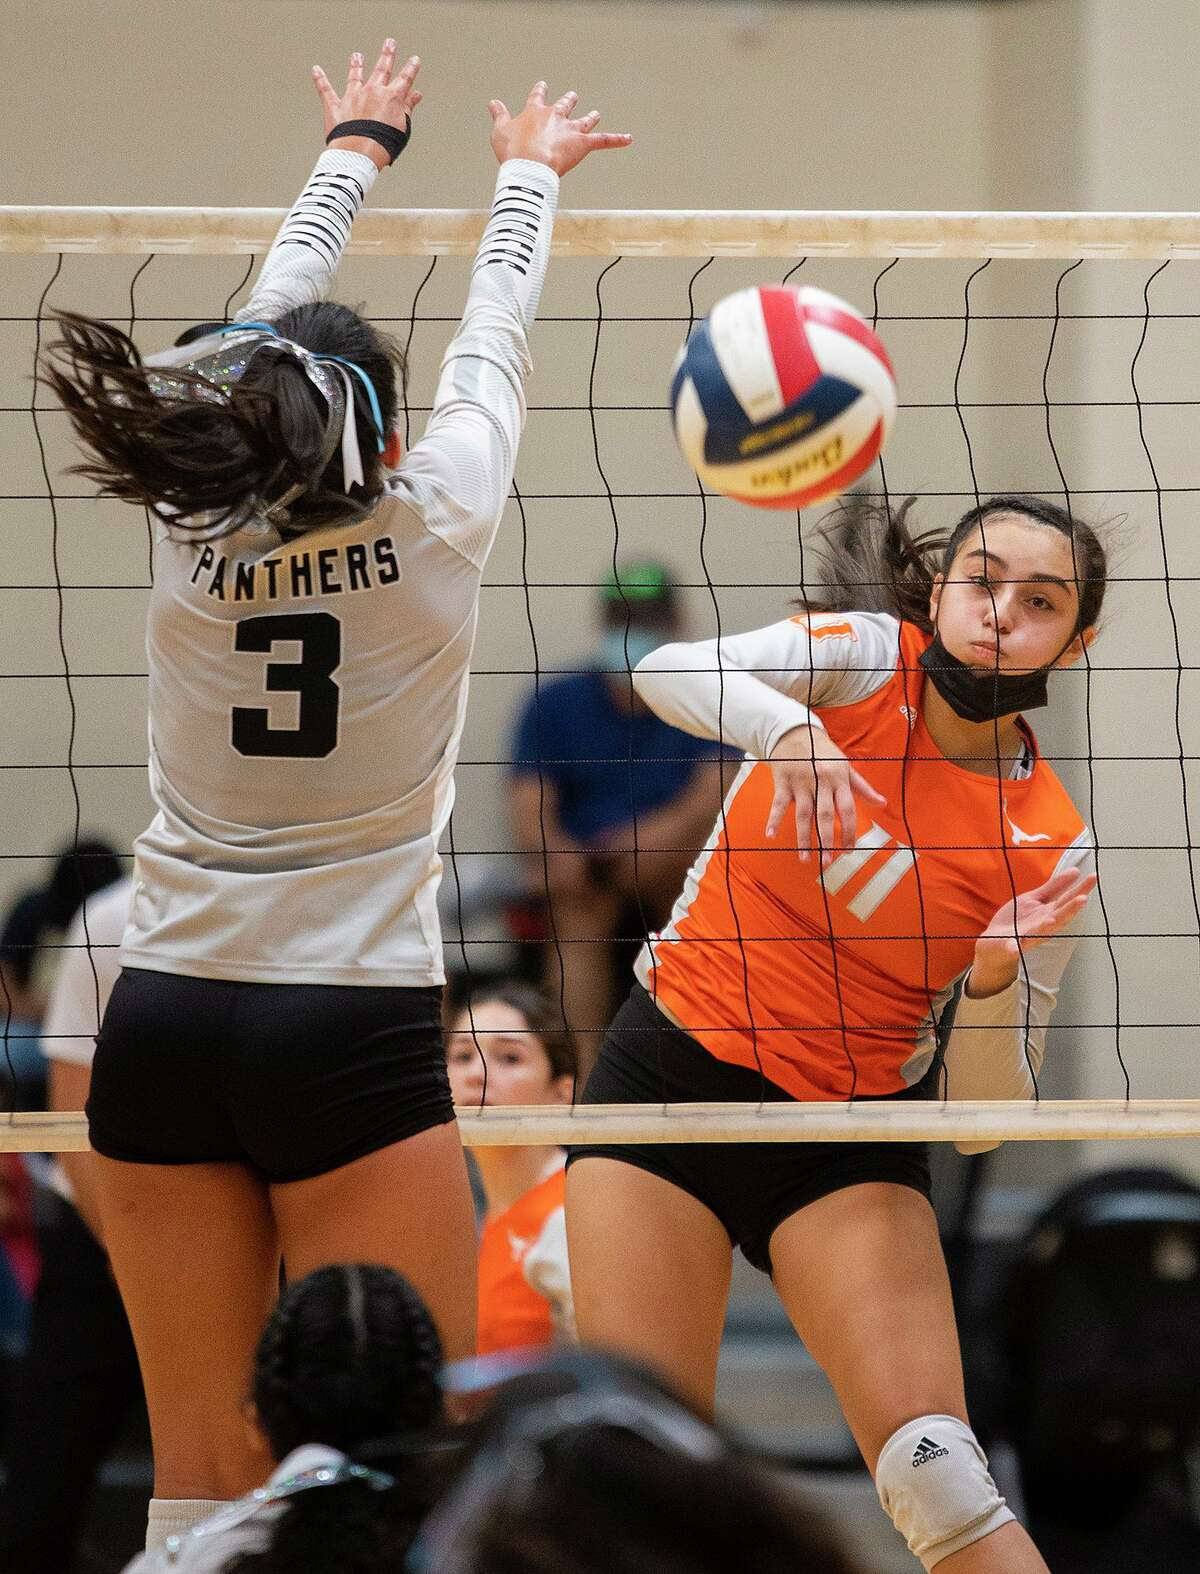 United High School Mia Molina goes for the kill as United South High School Sierra Sanchez goes for the block. Molina ranks No. 6 in the city with 226 kills on the season.